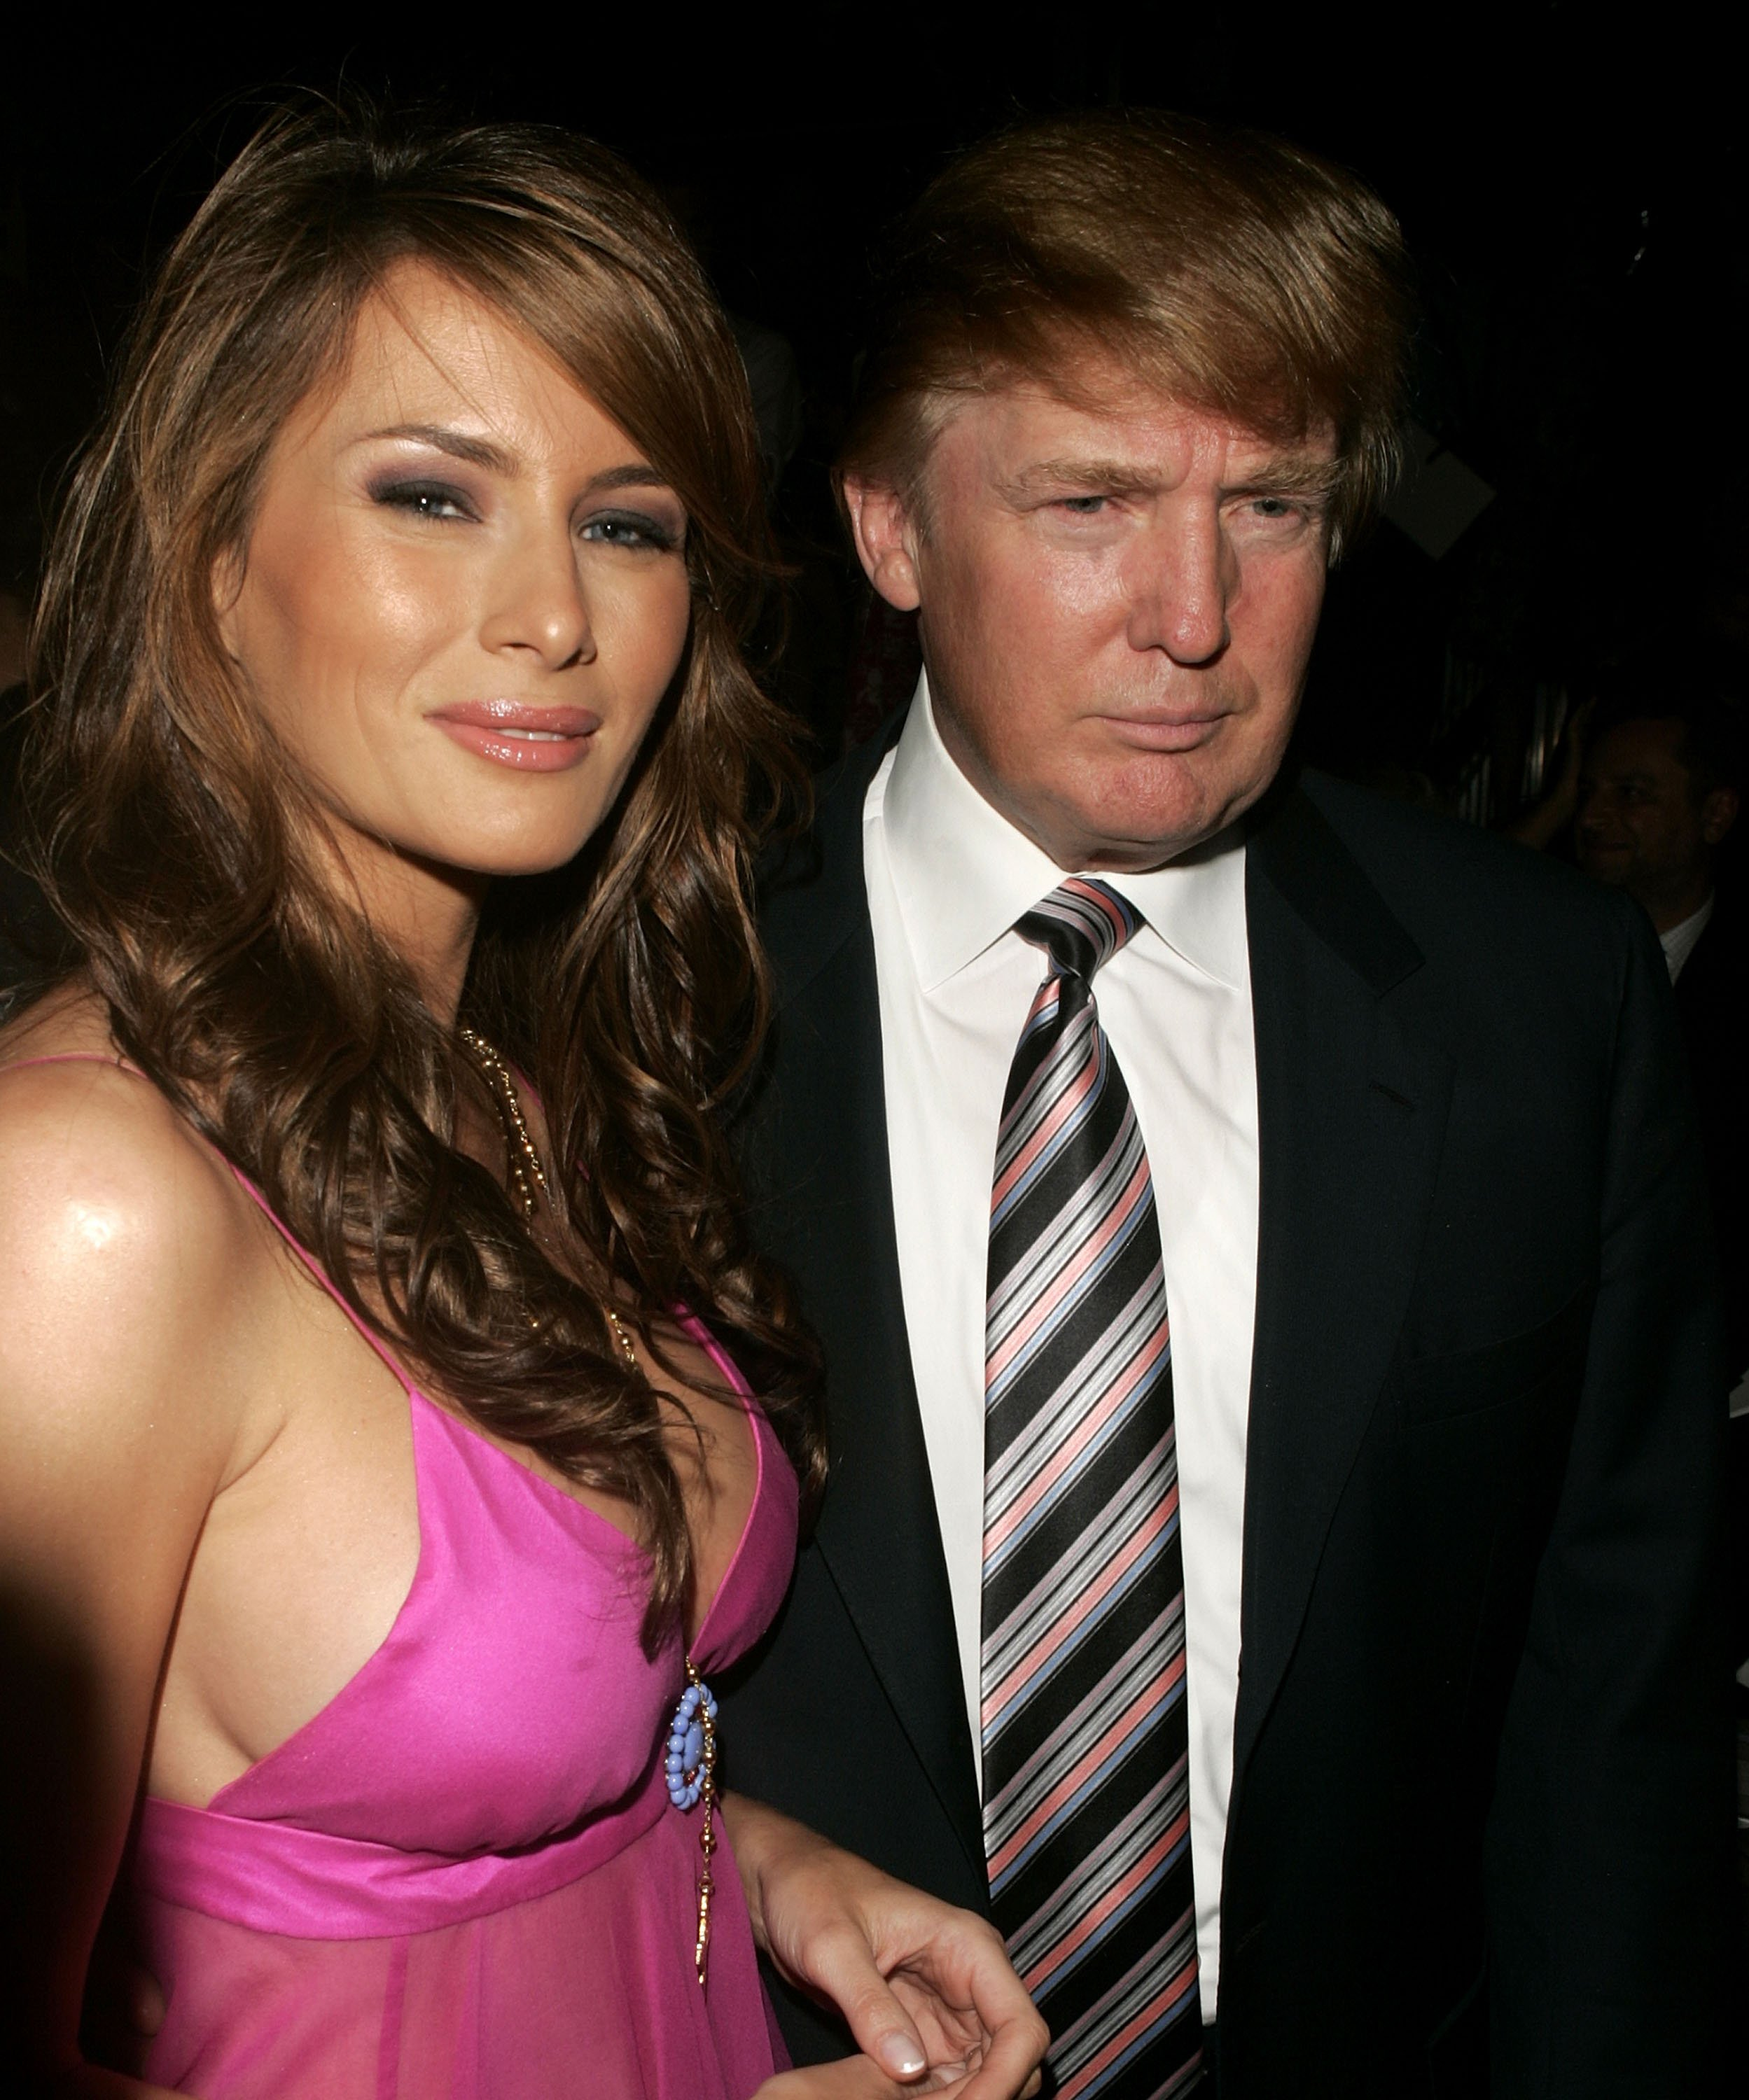 Donald and Melania Trump at Olympus Fashion Week in 2005 | Photo: Getty Images